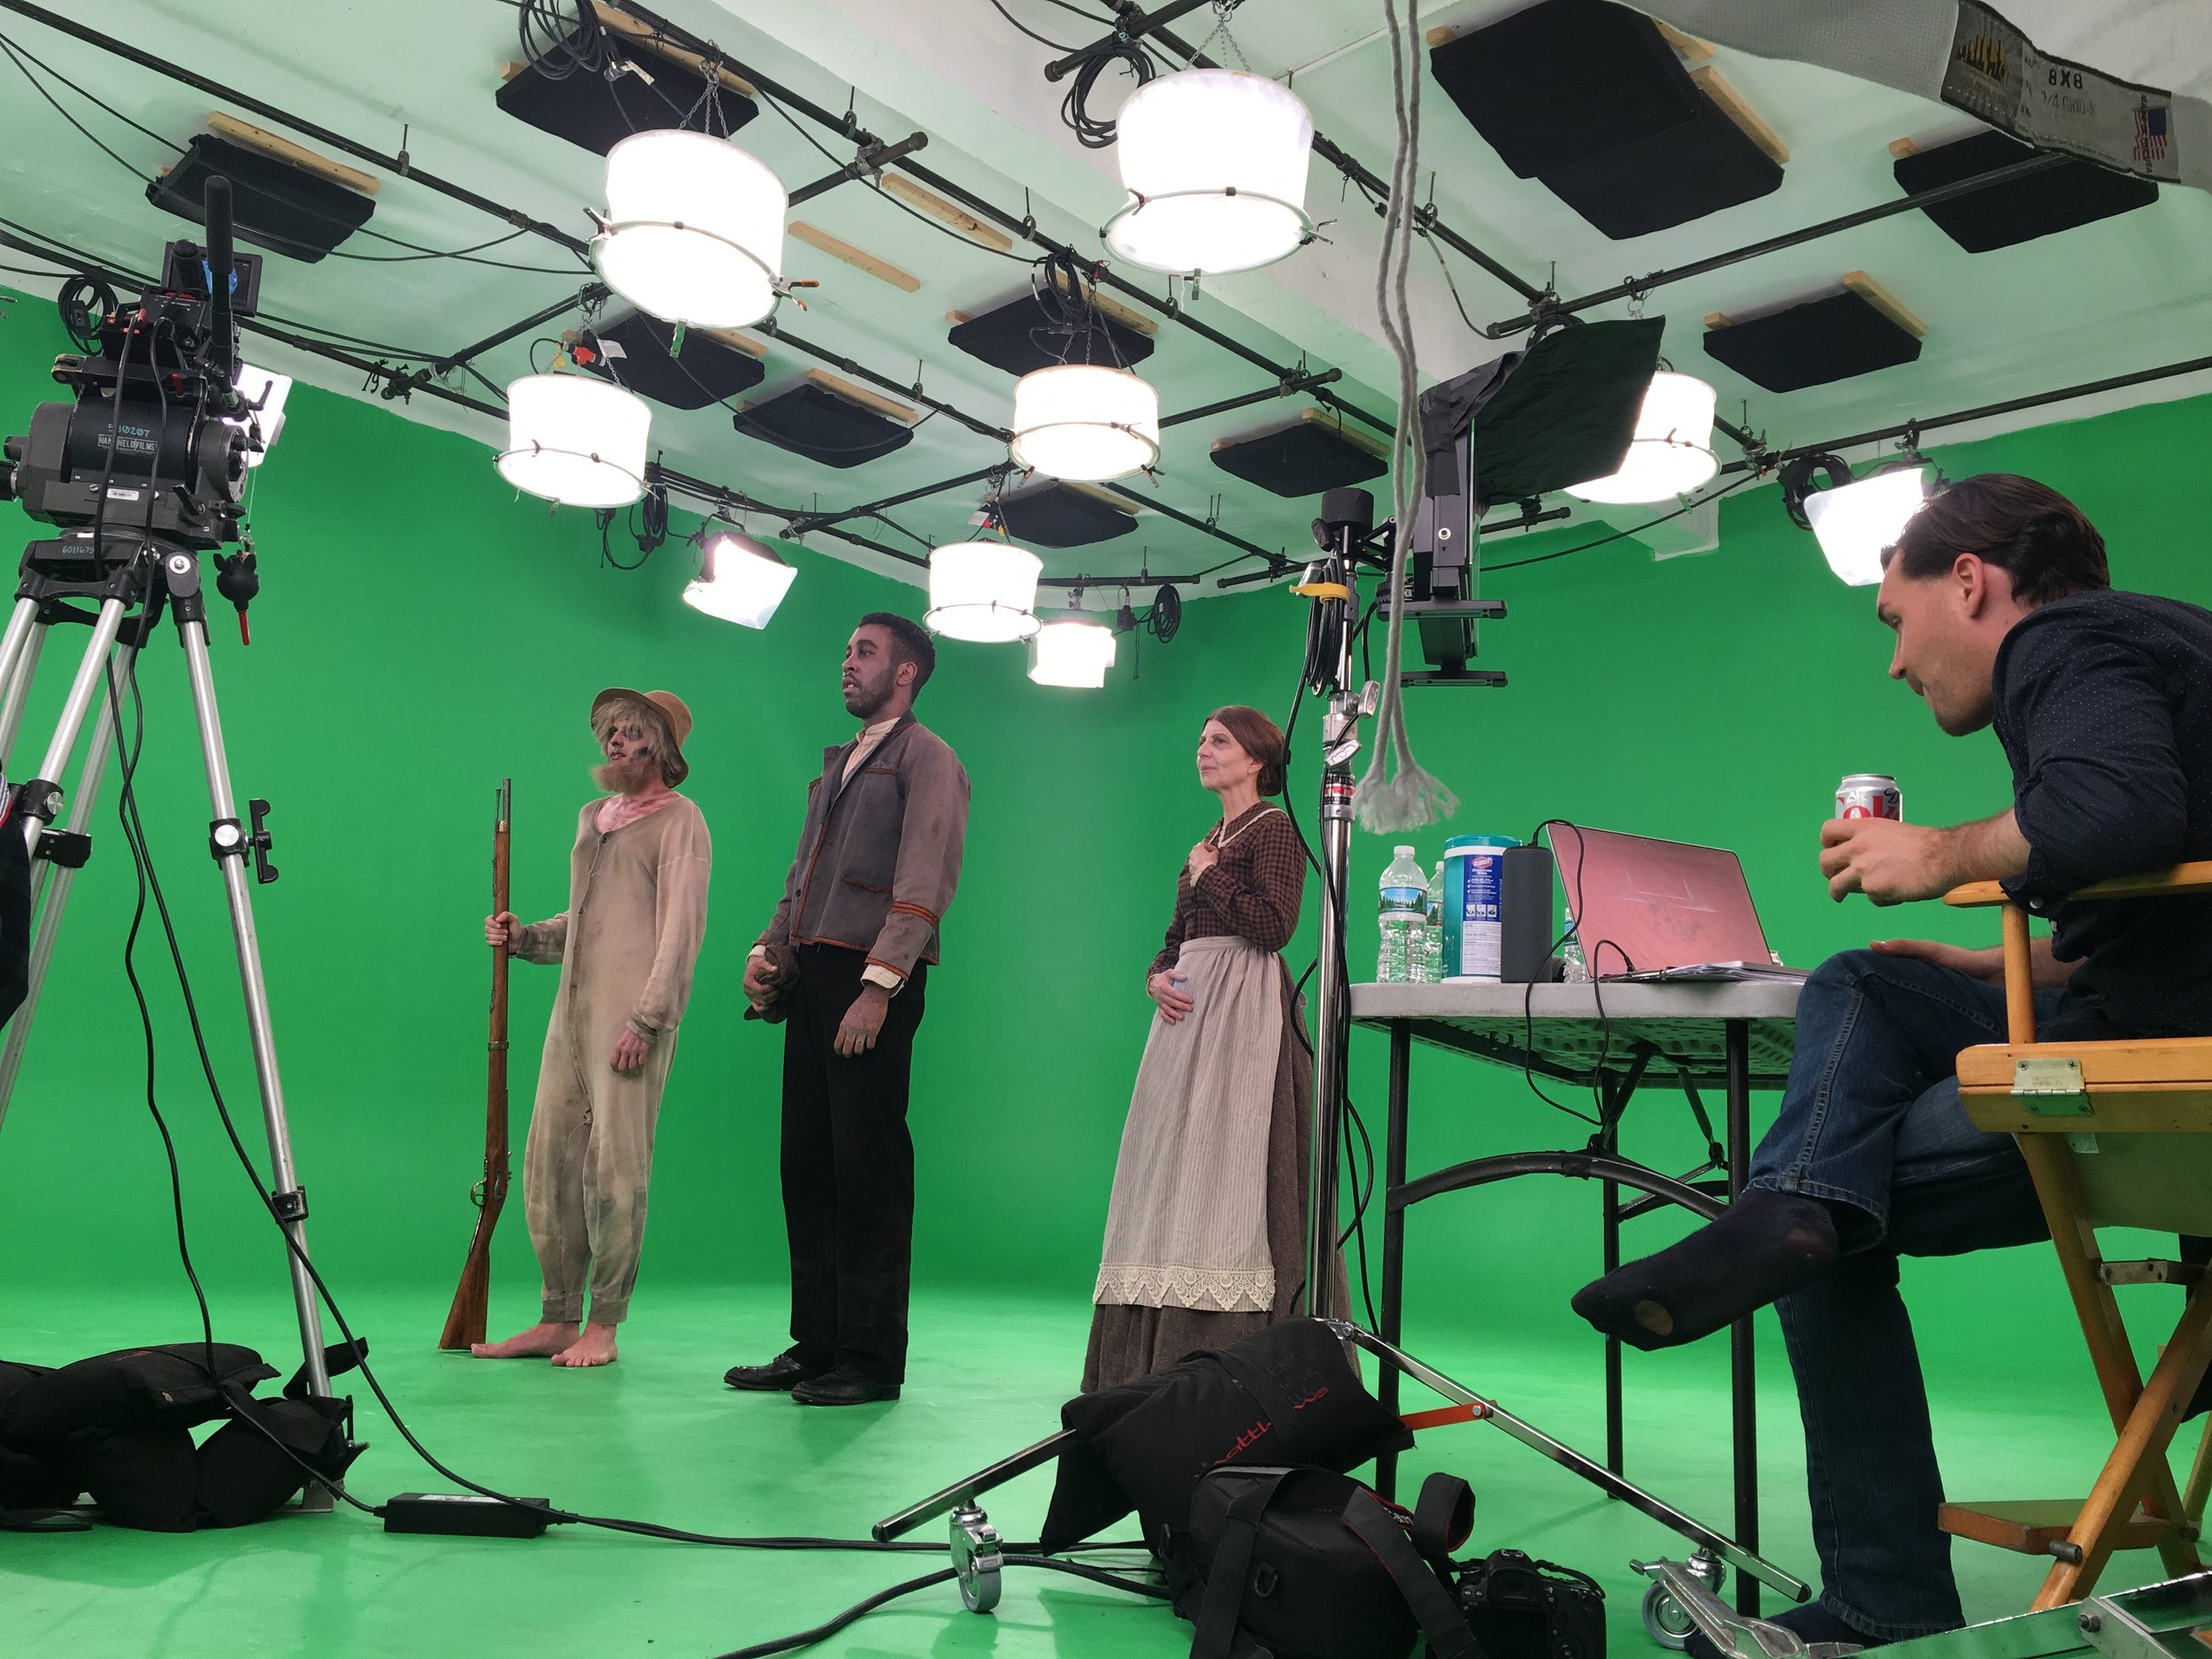 greenscreen-onset-soundstage-nycproduction-georgesaunders-beelectricstudios.jpg